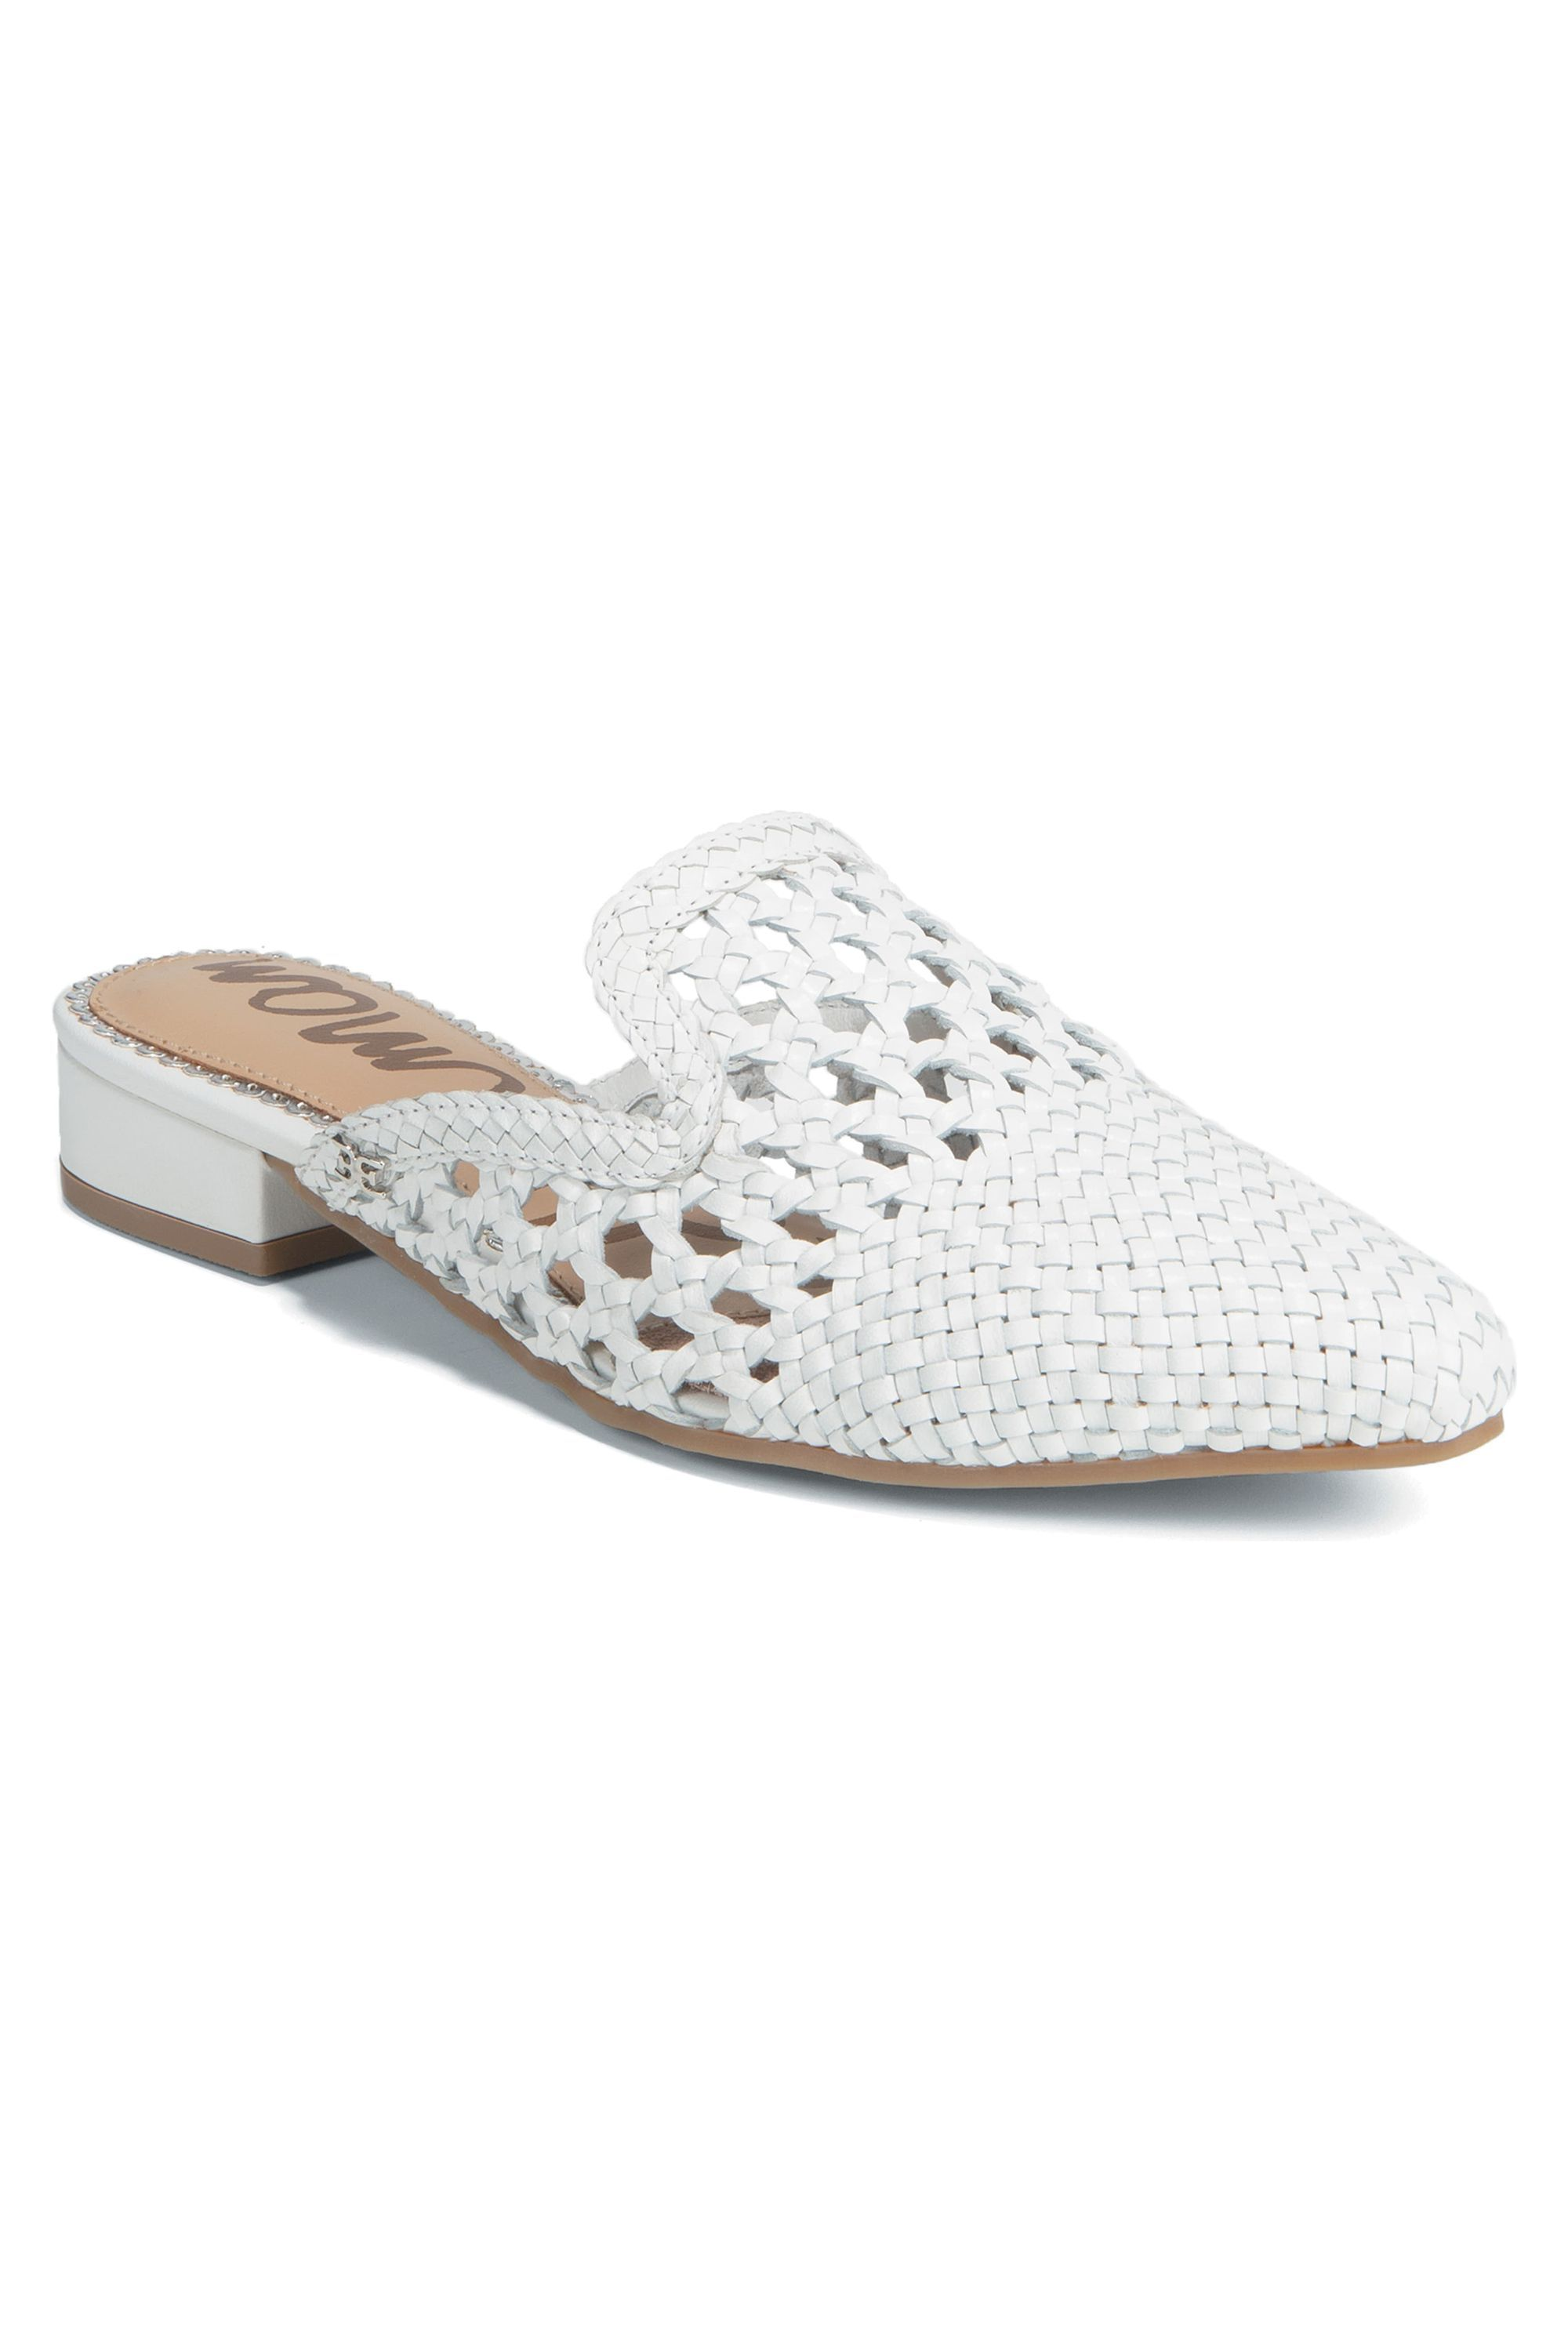 9e3c3a5a4613 15 Summer Shoes That Don't Require a Pedicure (And They're On Sale)